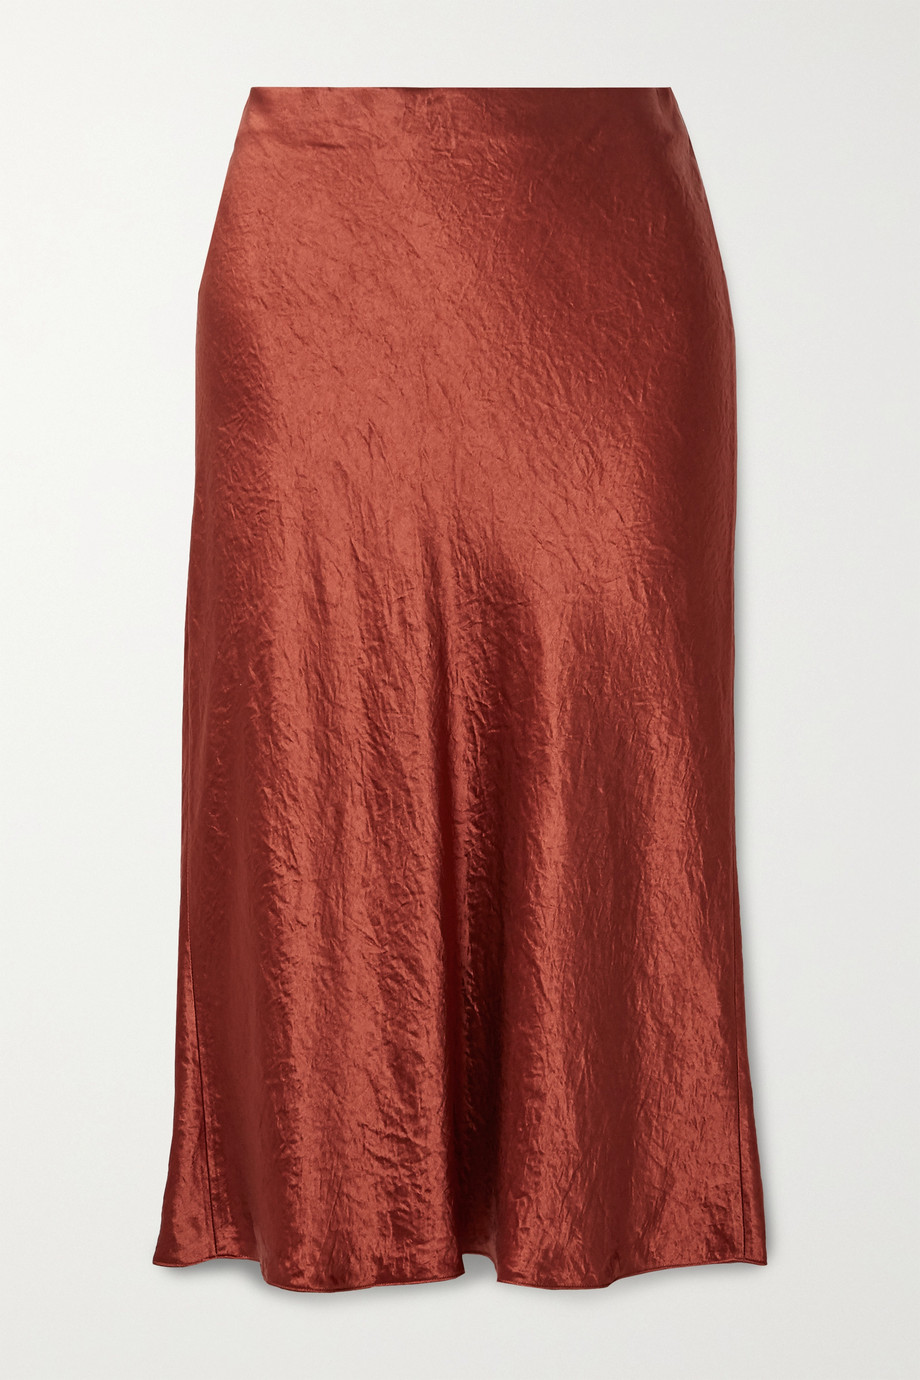 Vince Hammered-satin midi skirt